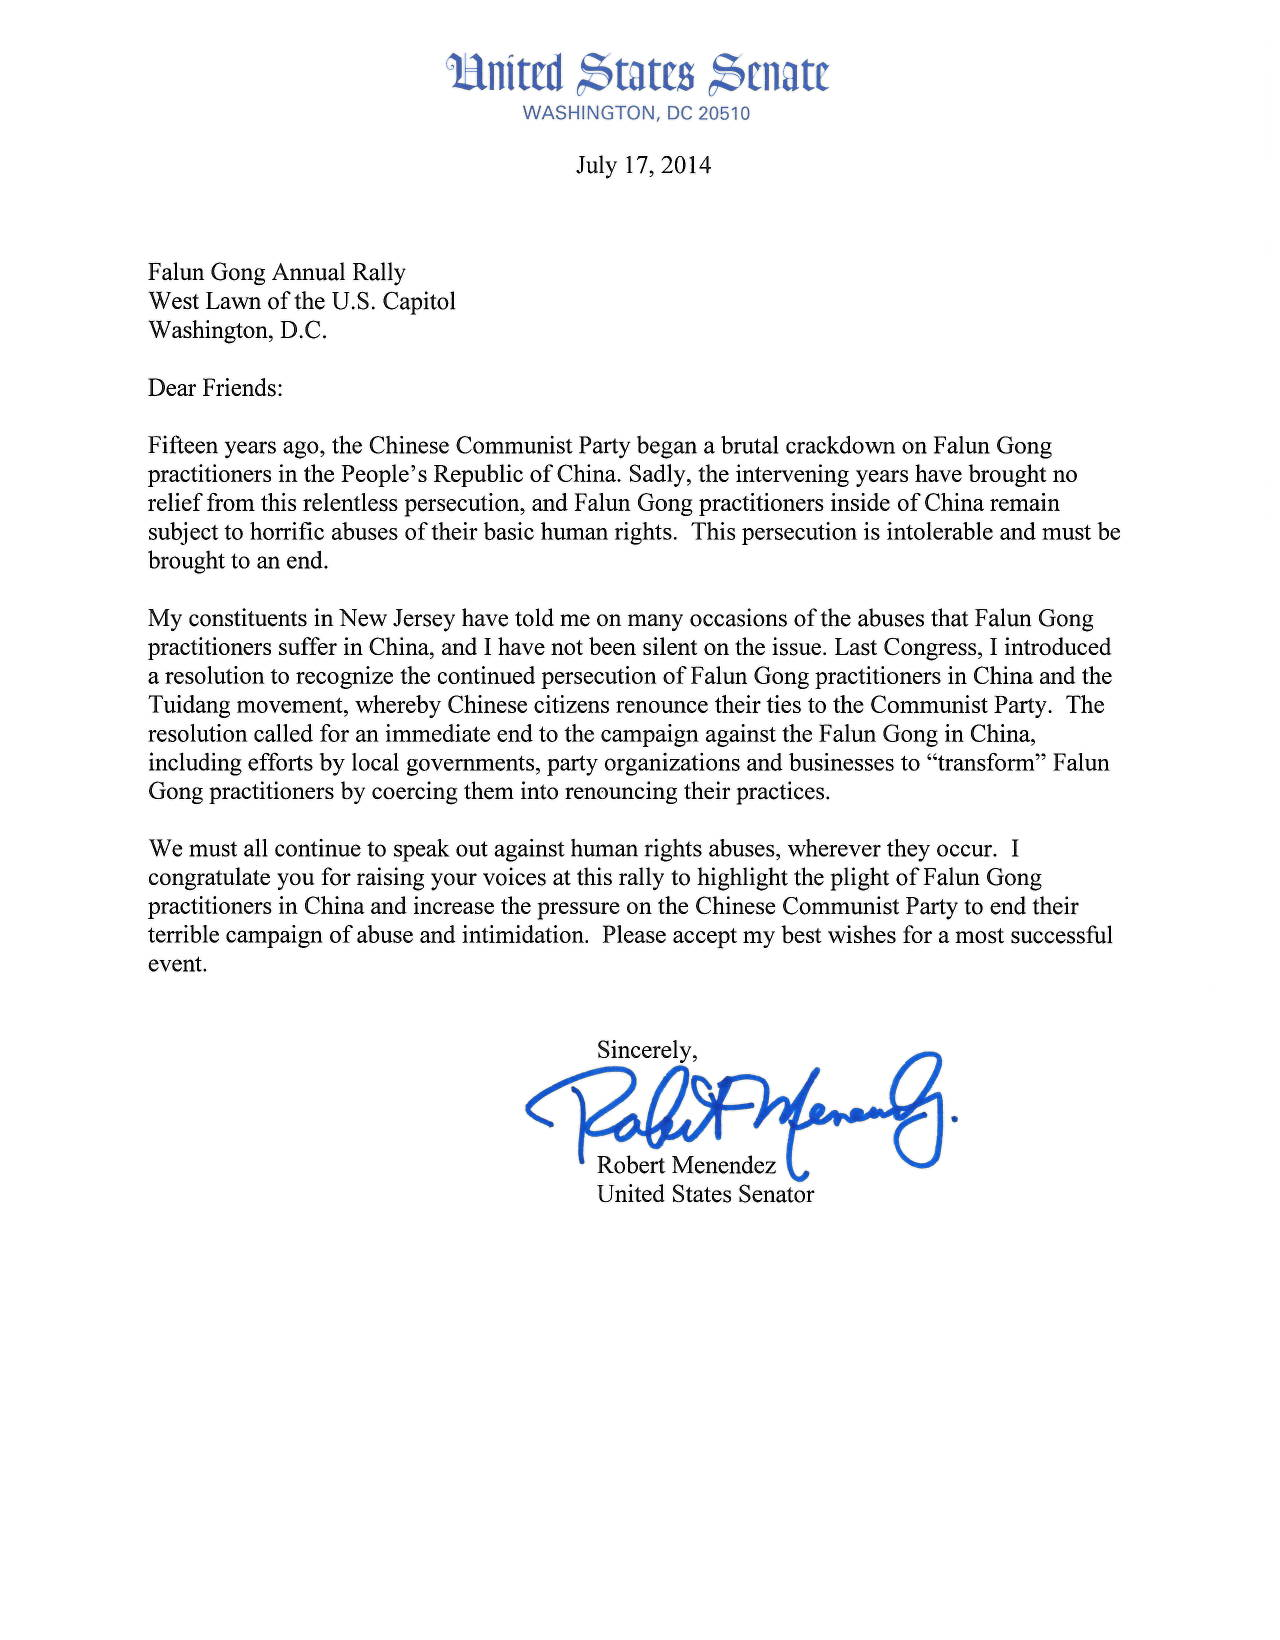 Us federal legislators support falun gong on the 15th support letter from senator robert menendez of new jersey ccuart Image collections